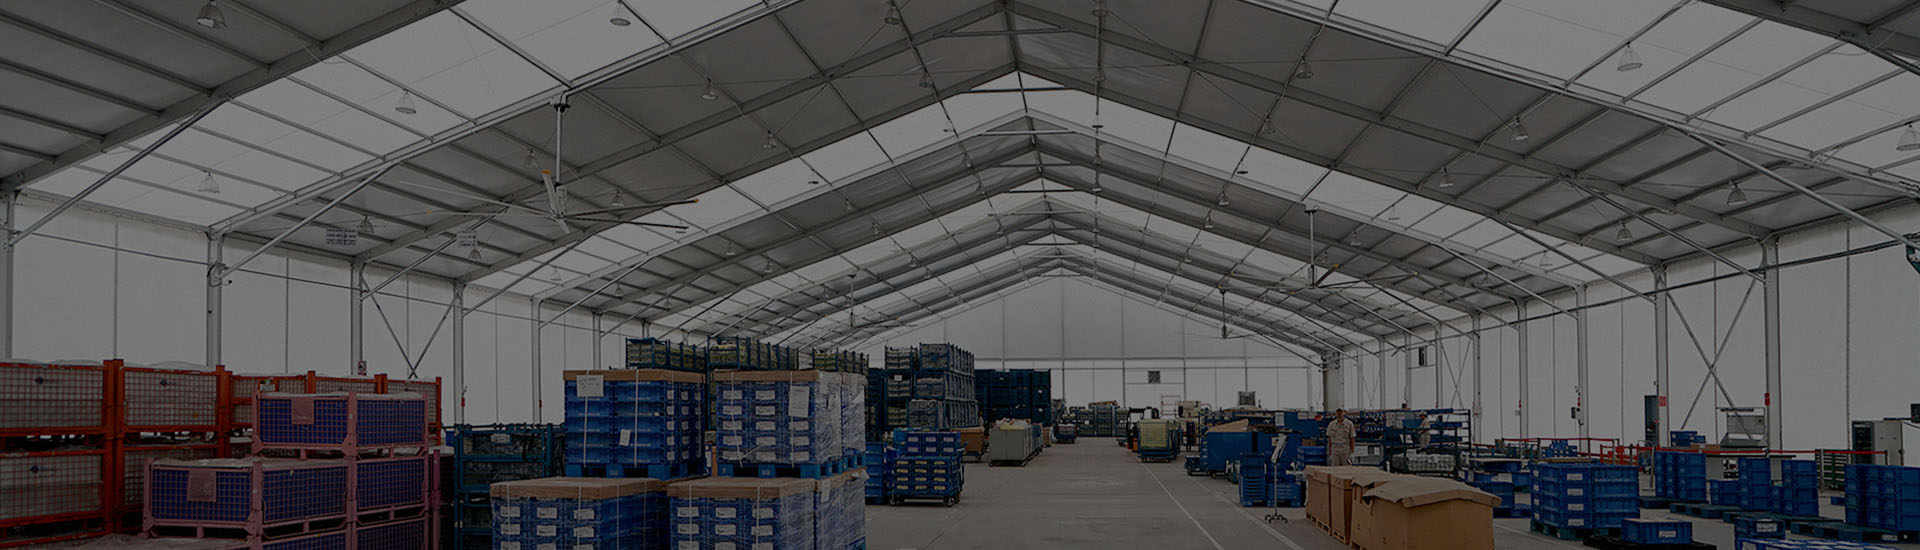 Large Outdoor Storage Tents